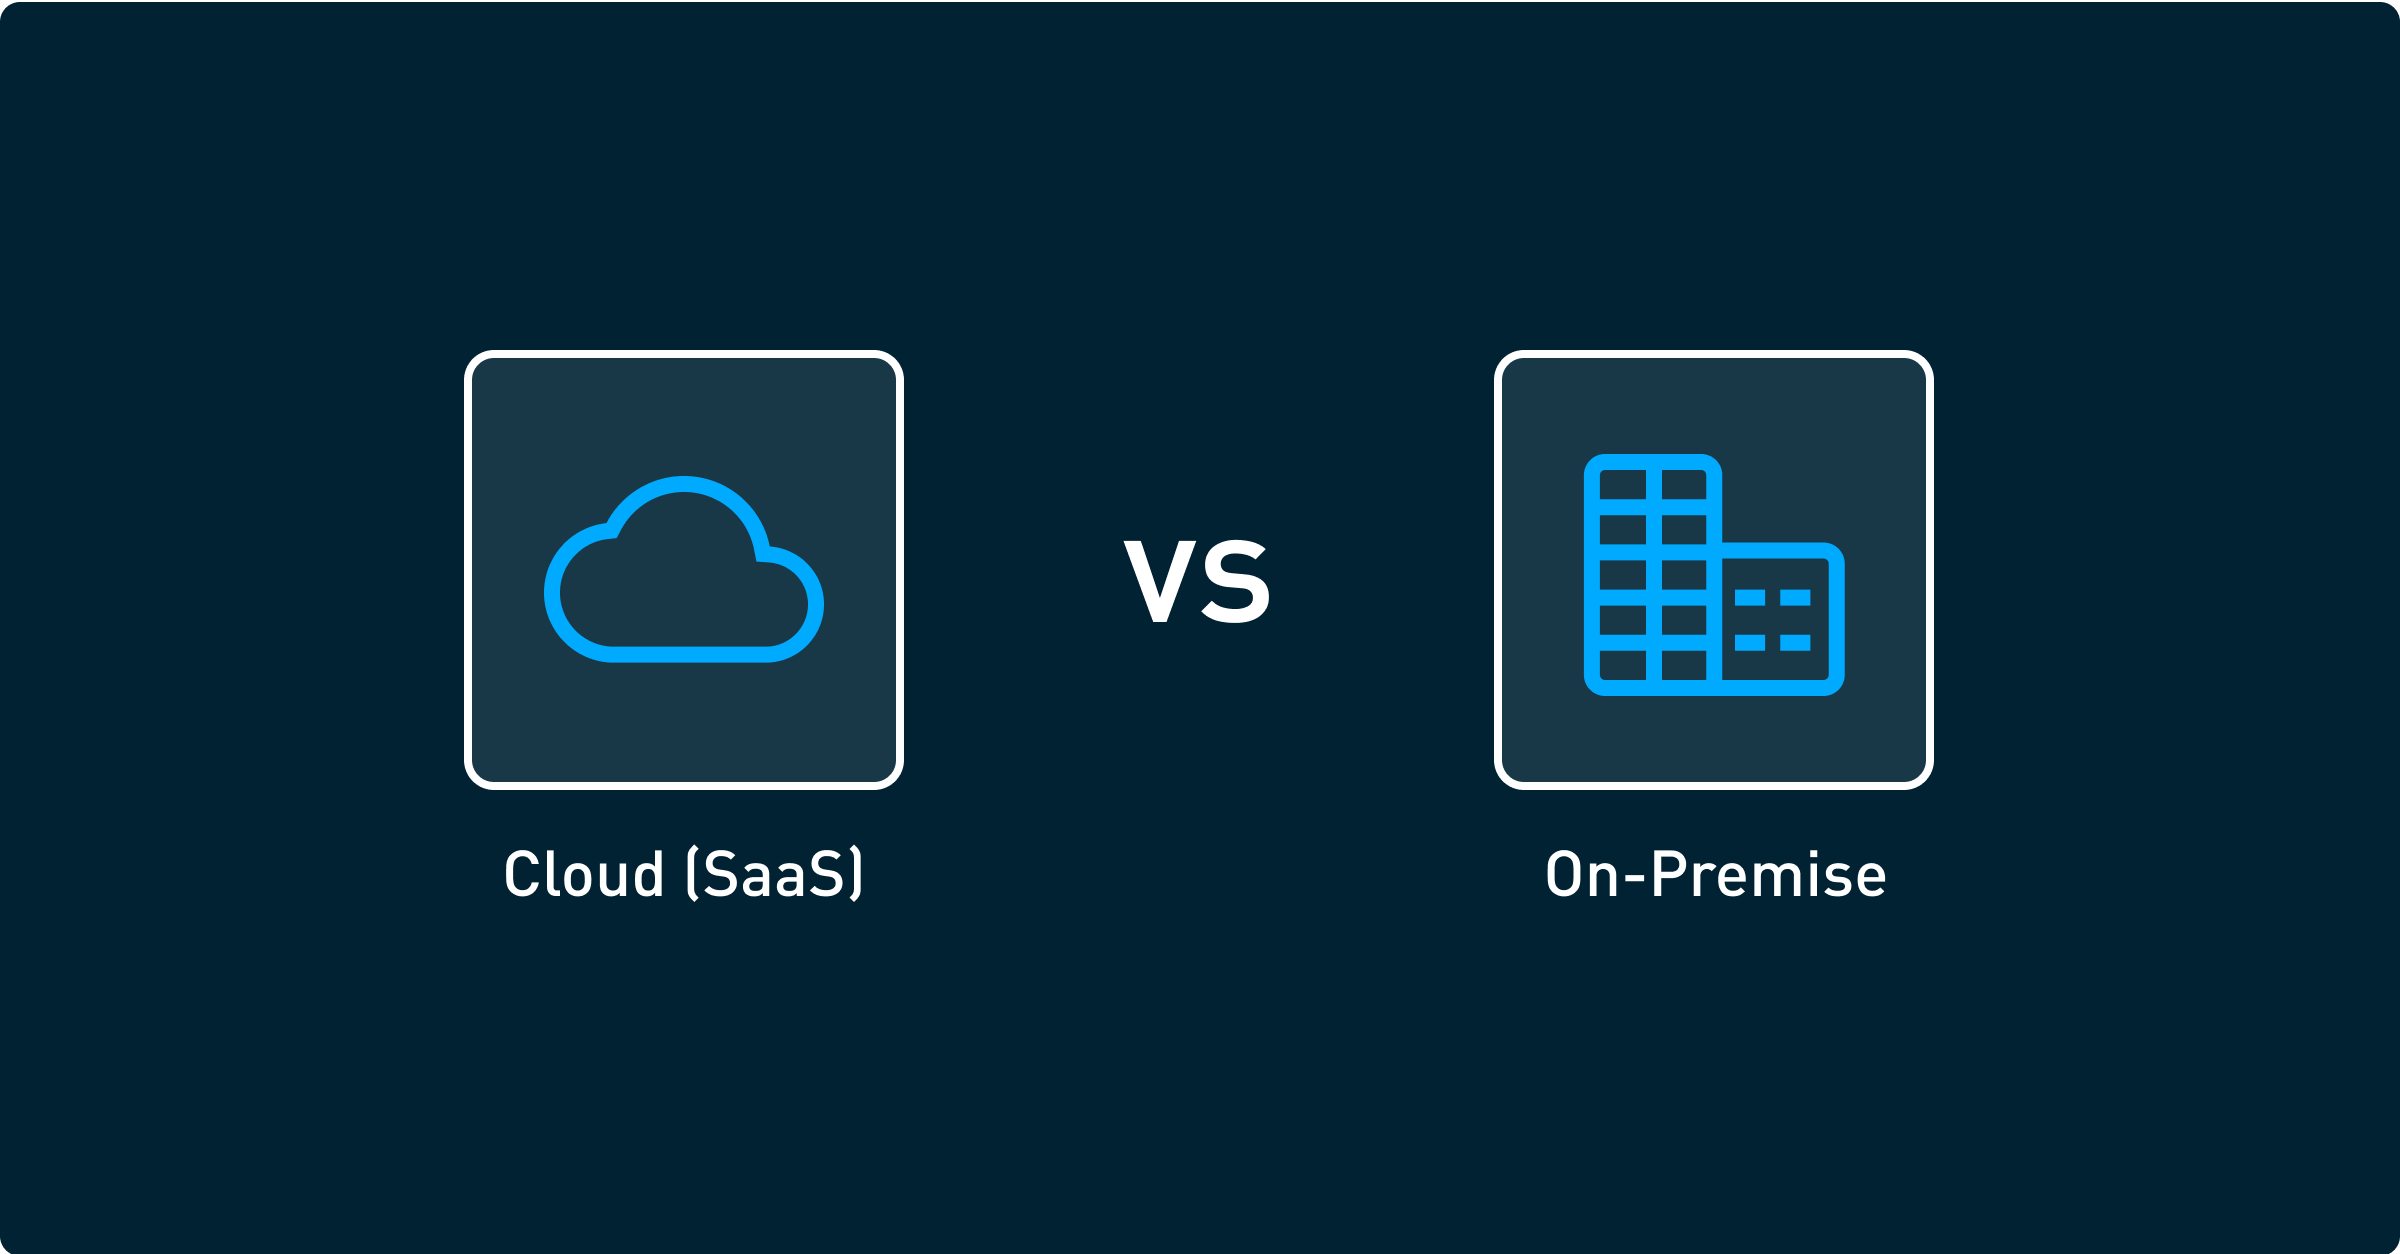 On-prem DAM vs. SaaS DAM: which is right for your organization?